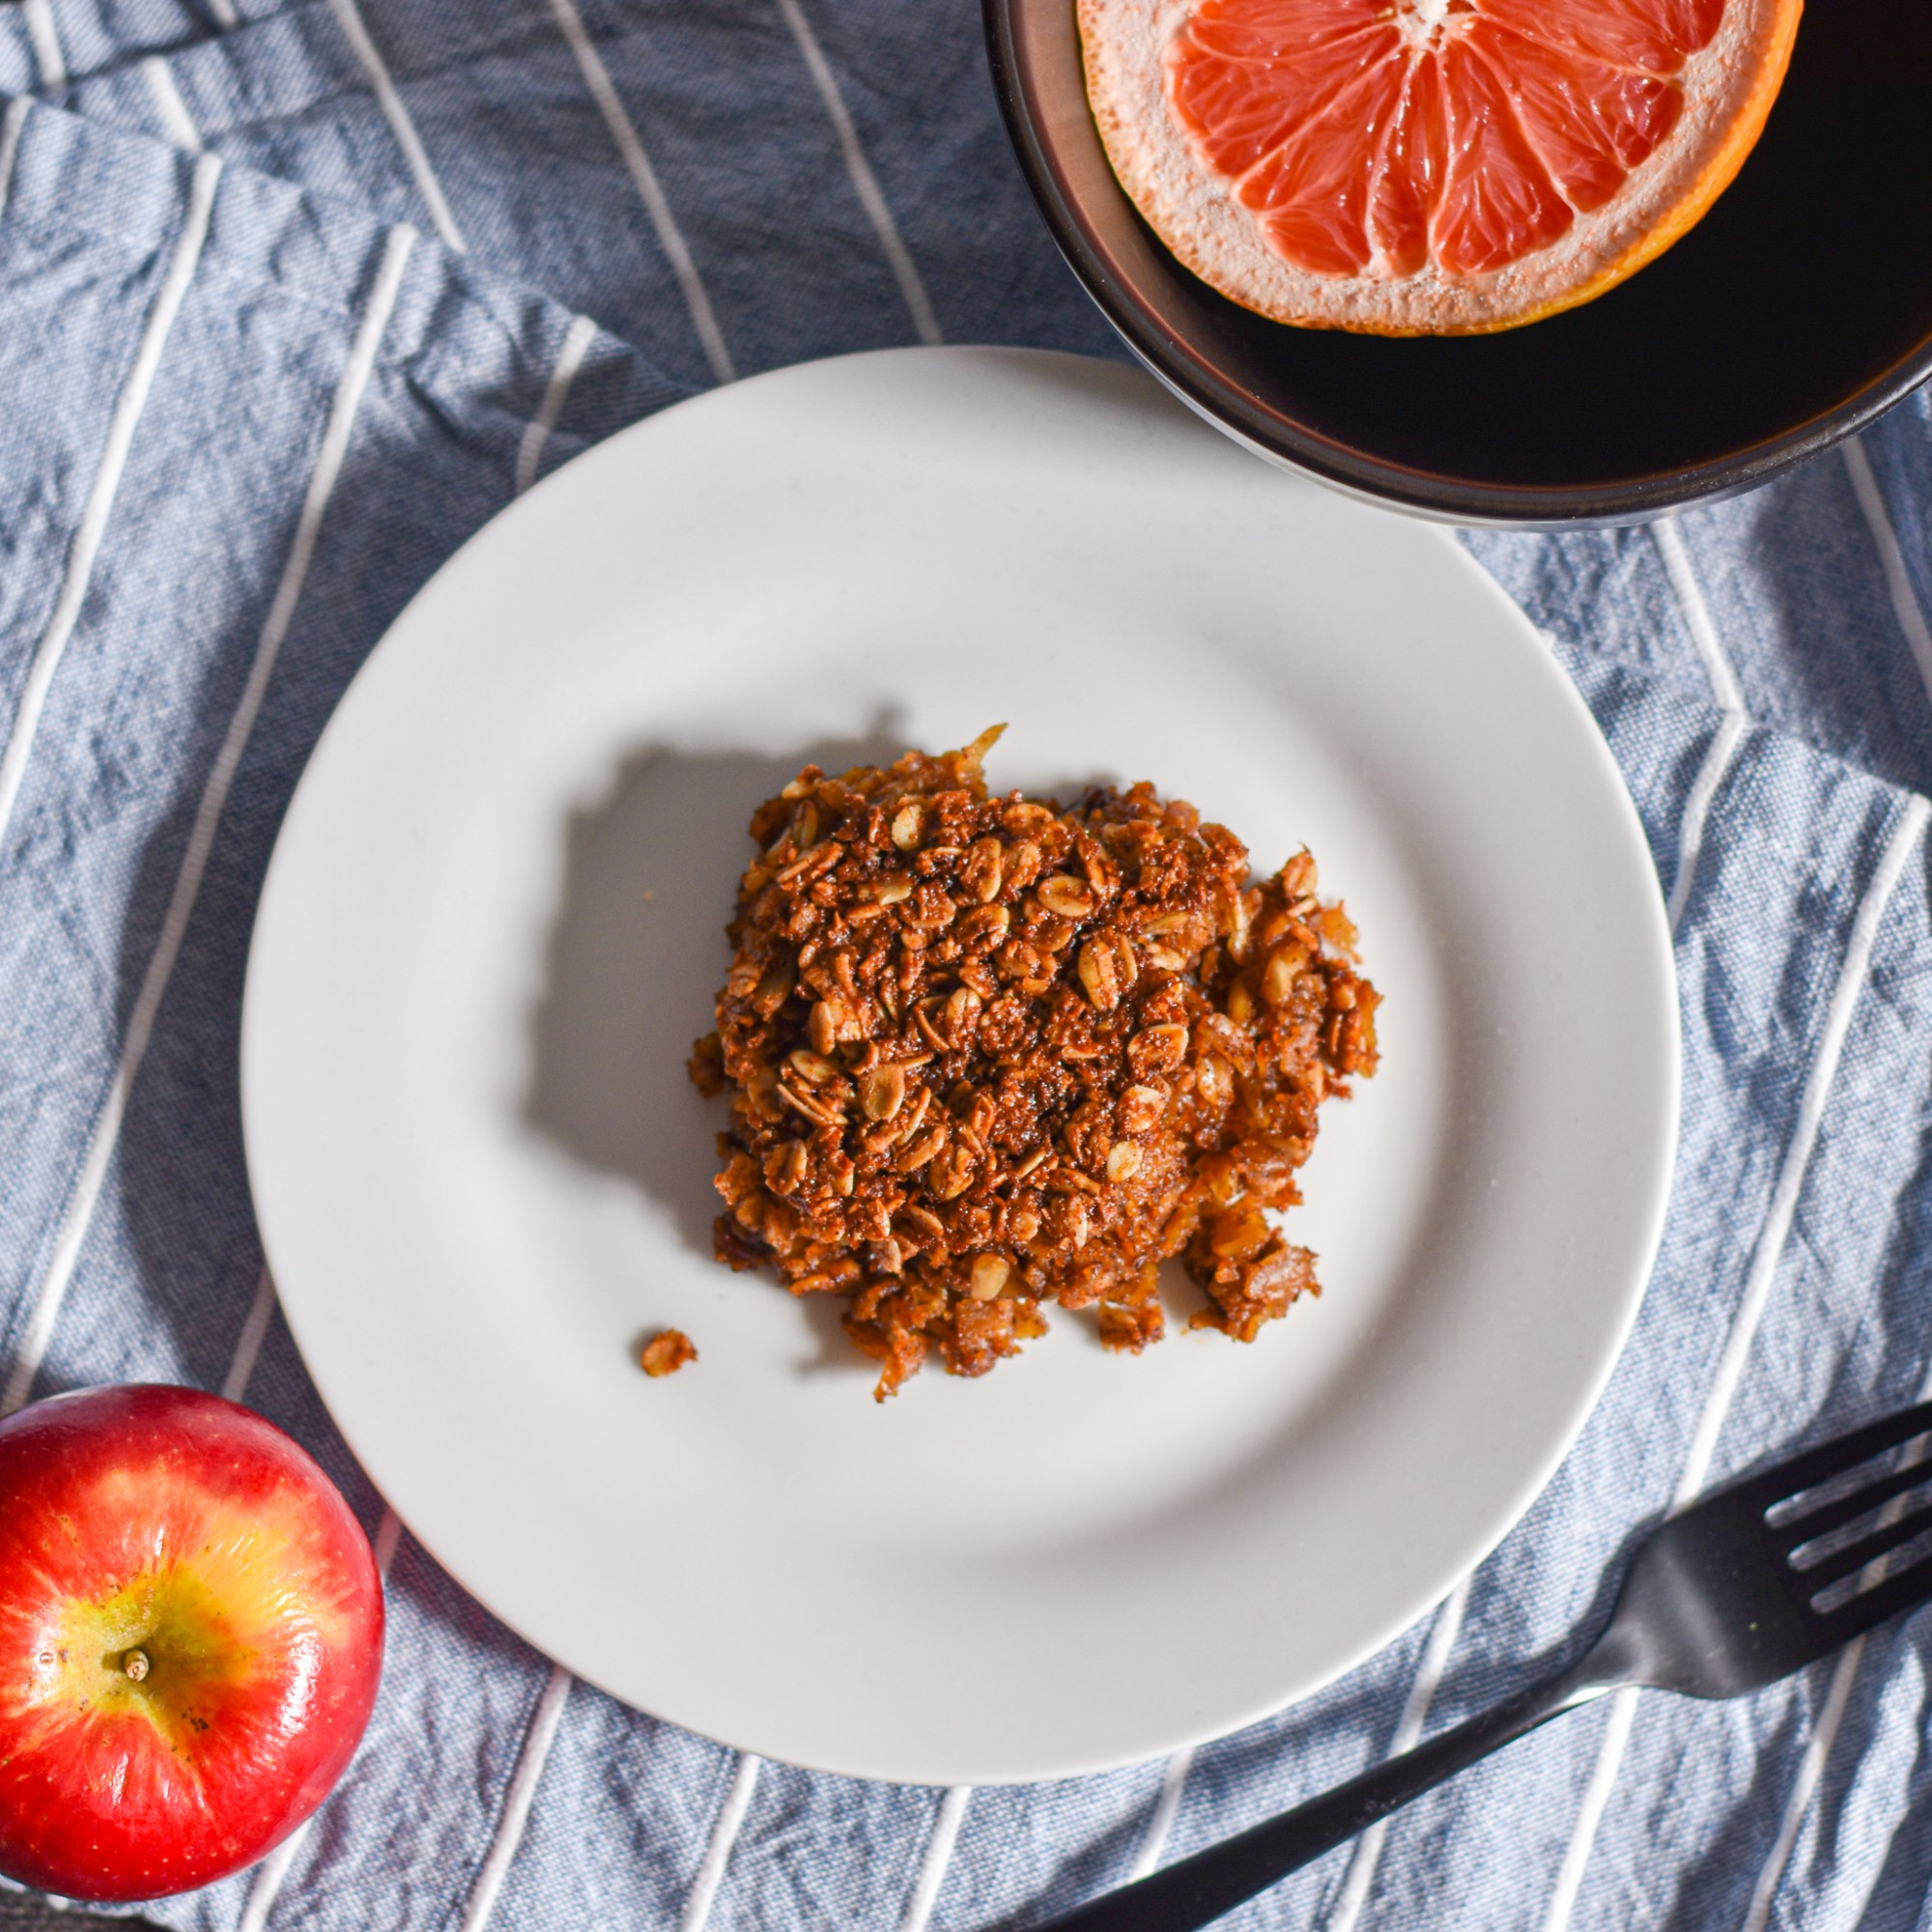 Apple Cinnamon Baked Oatmeal by Candidly Delicious